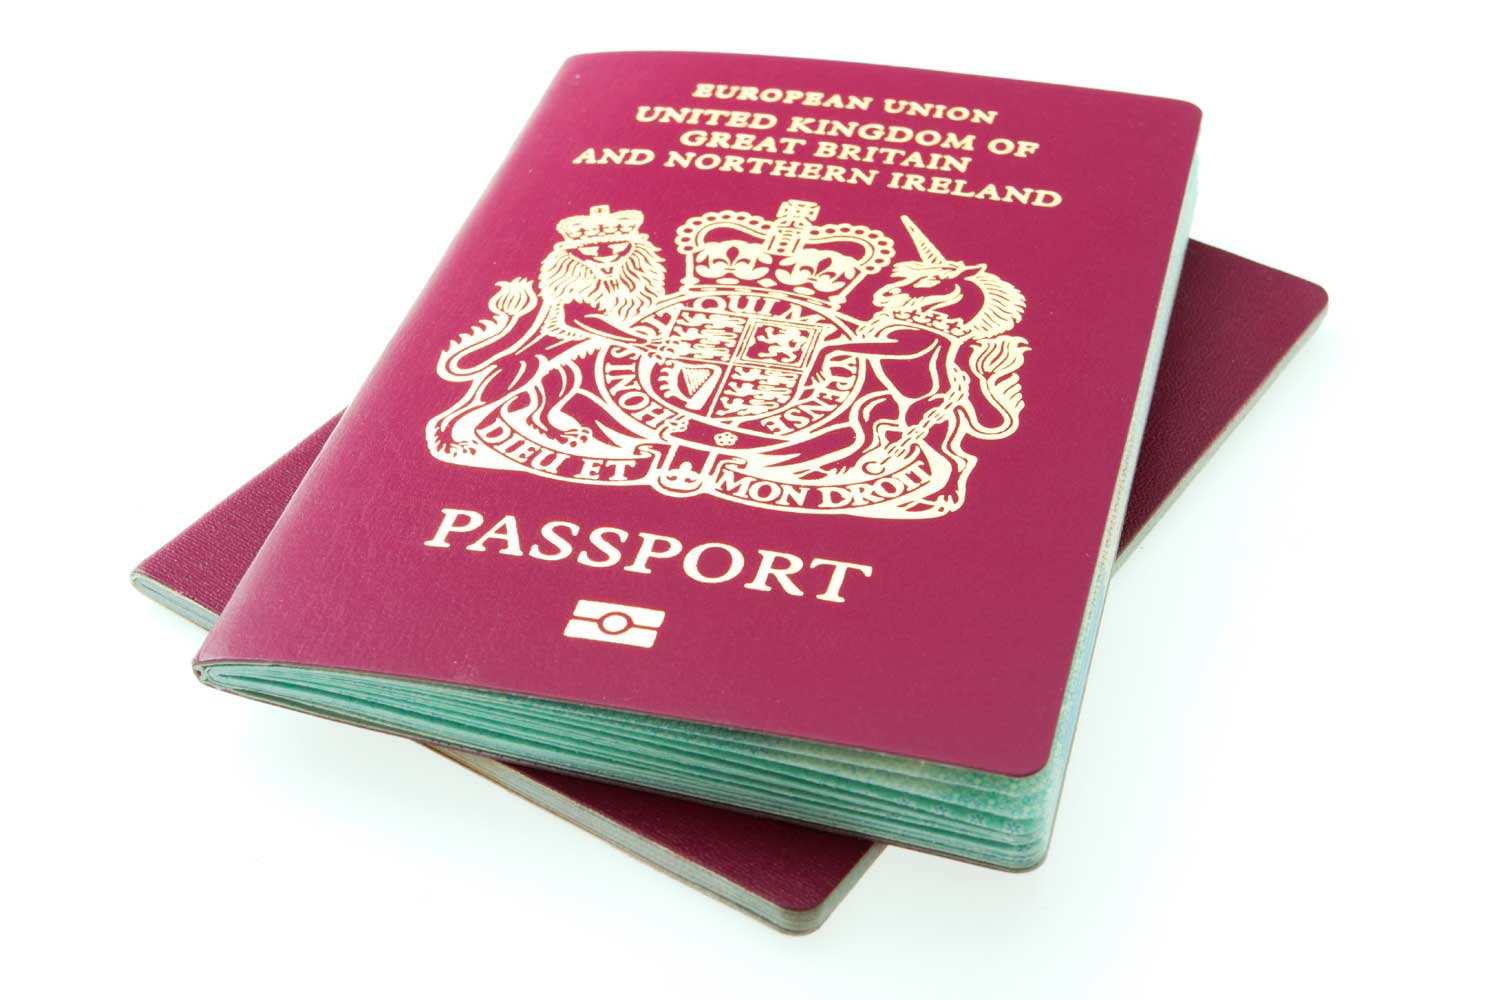 Landlords and letting agents face jail / Right to Rent could impact British citizens without passports